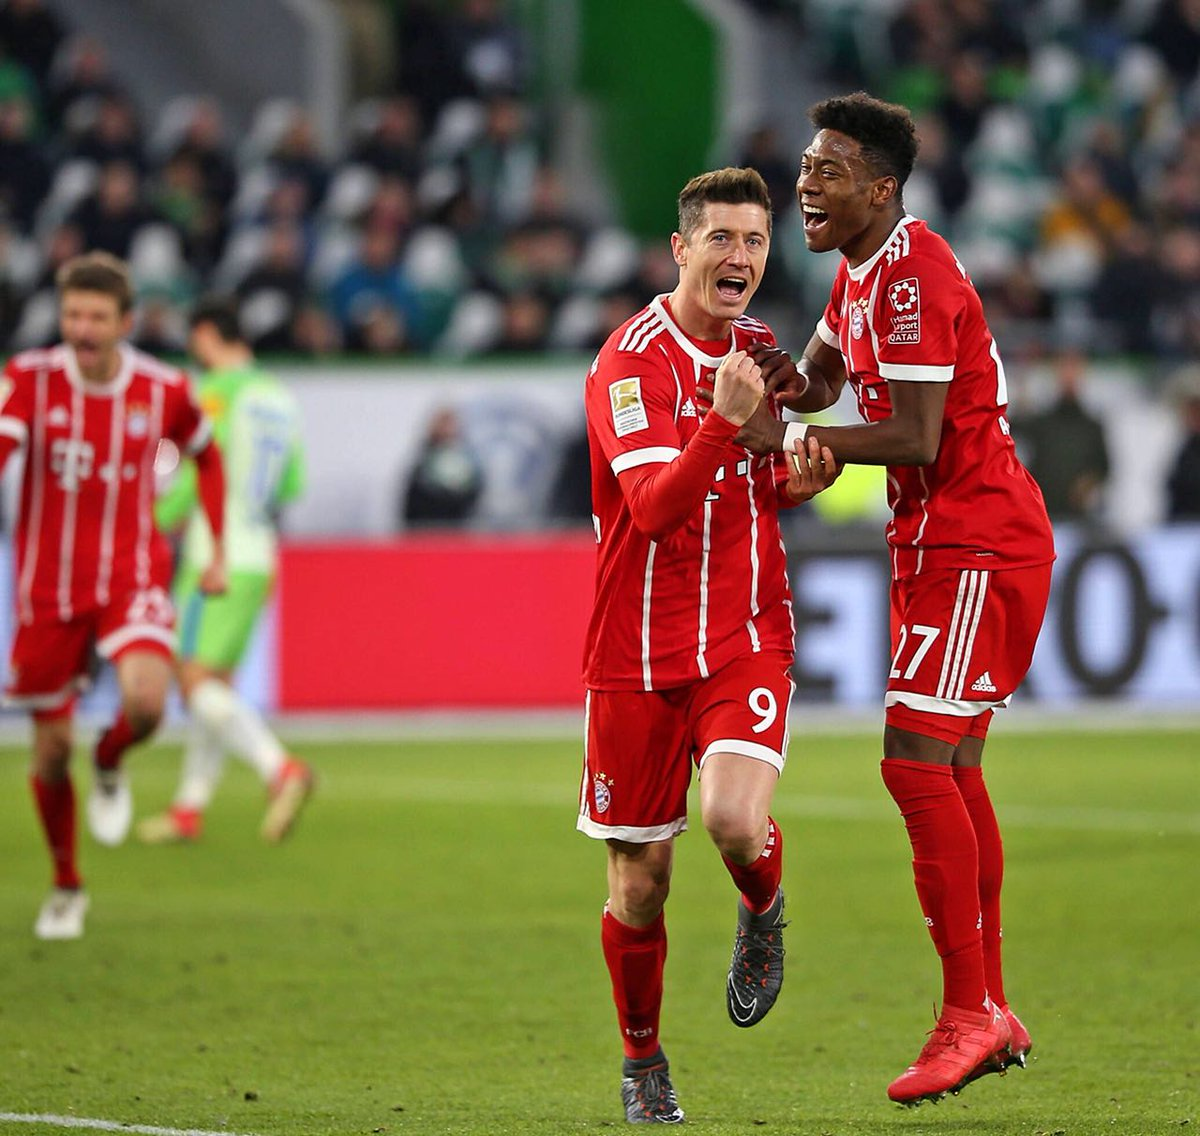 RT @David_Alaba: Close finish - three points 👊🏾💯 #MiaSanMia #da27 https://t.co/lGPWBi2cVh